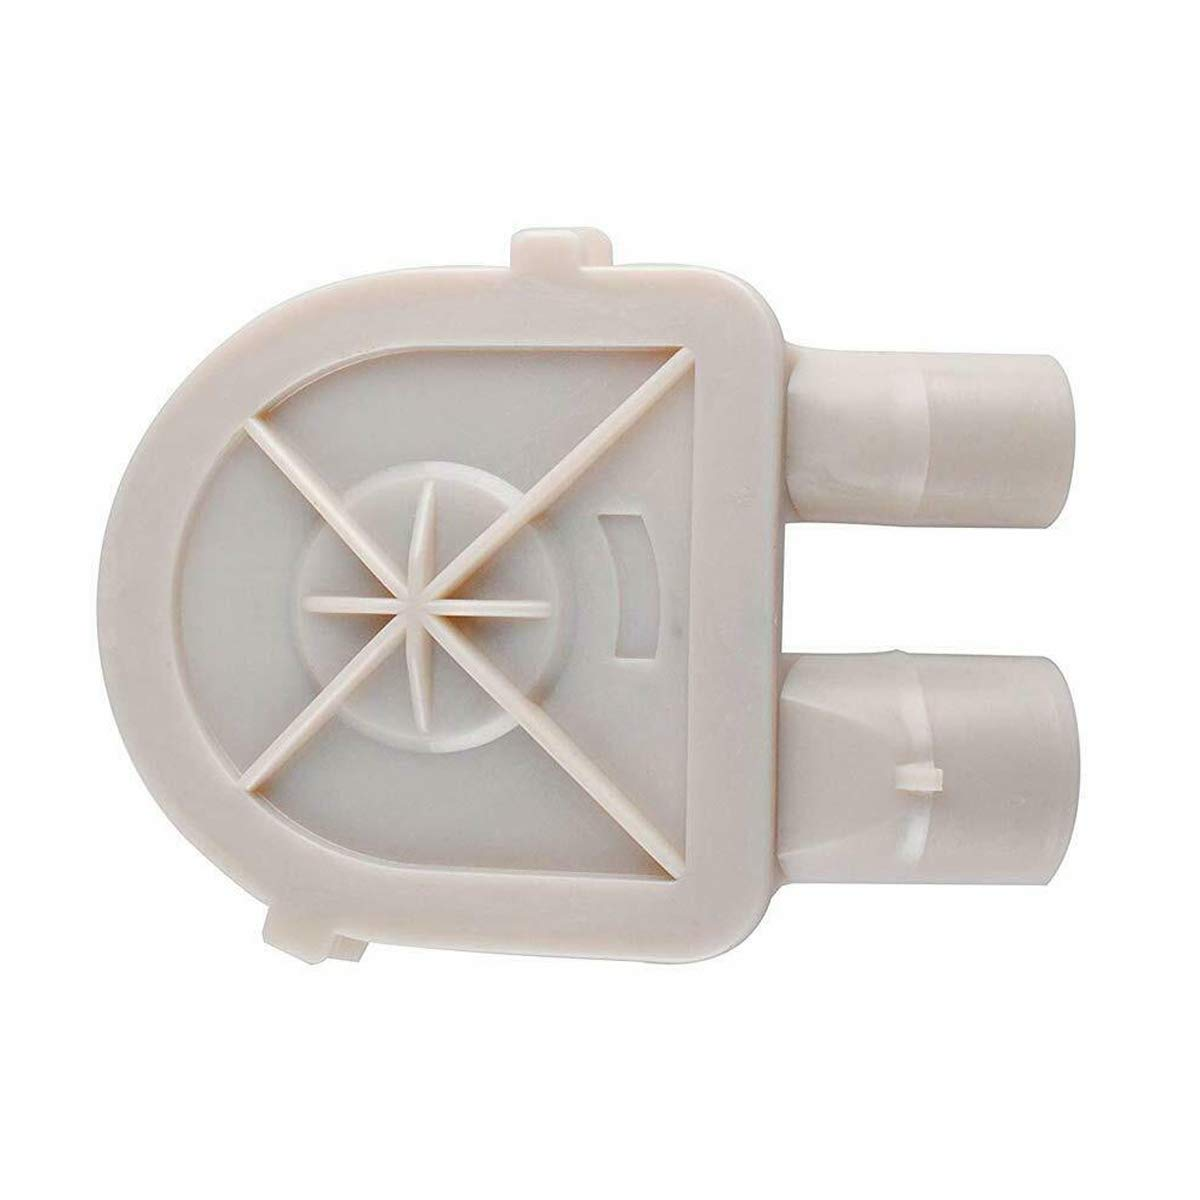 Ecumfy 3363394 Washer Pump Compatible with Whirlpool Replaces WP3363394 3352492 3352493 3352293 3352292